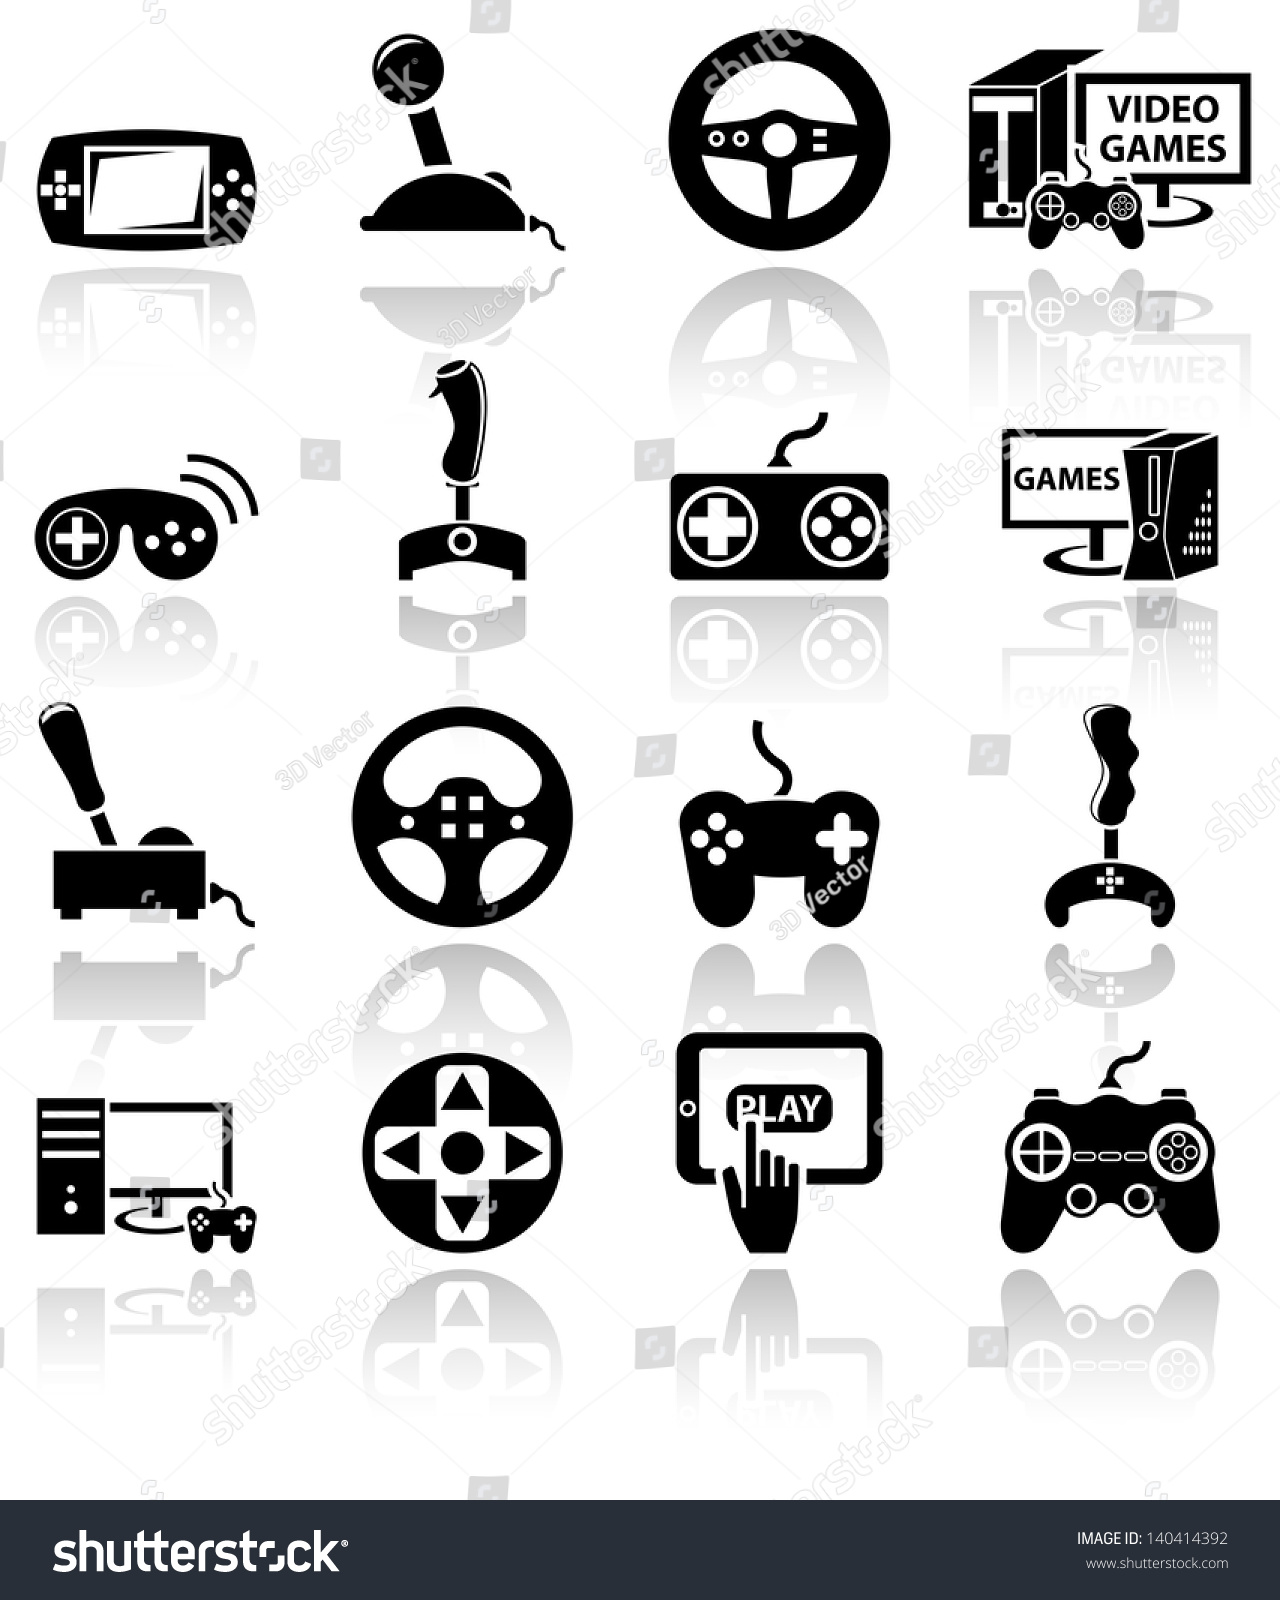 Video Game Vector Icon Set On Stock Vector 140414392 - Shutterstock